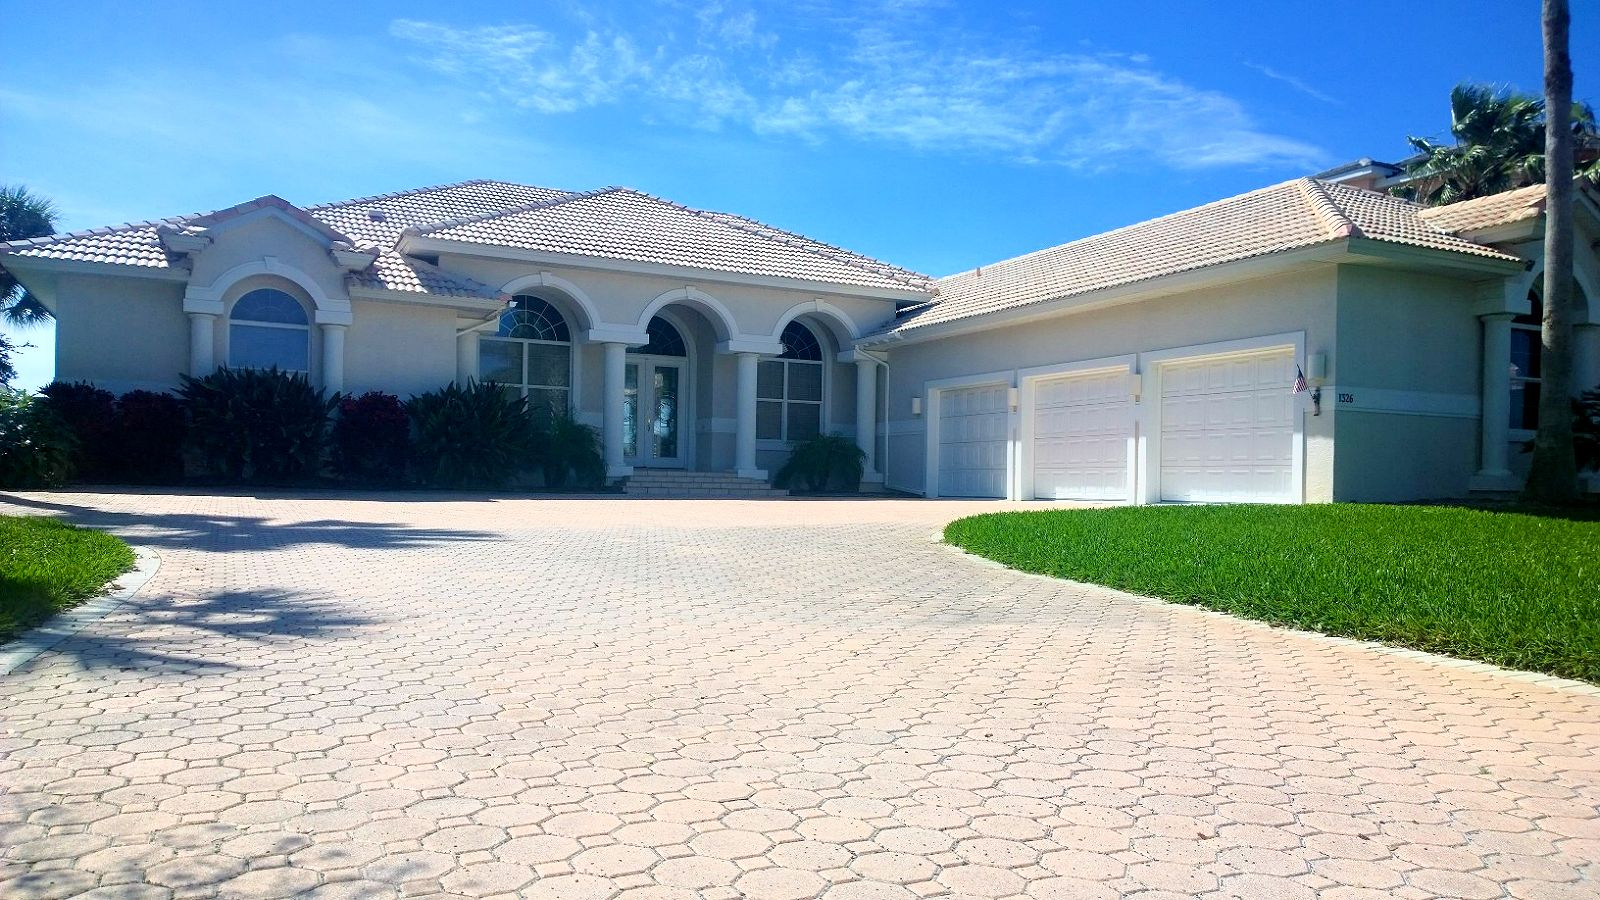 Florida homeowners insurance call us today for a free